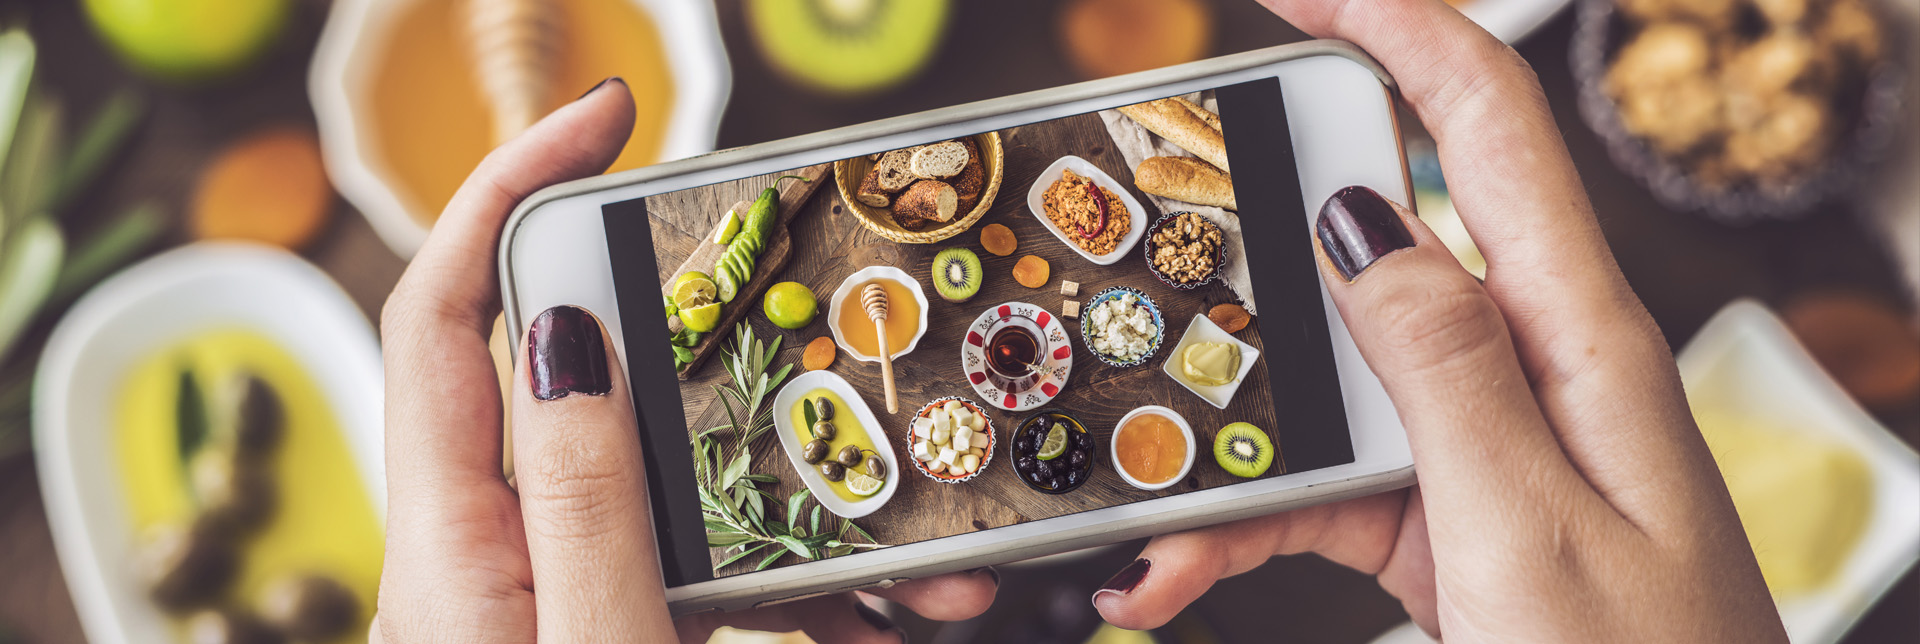 Top 9 Food Trends in 2019